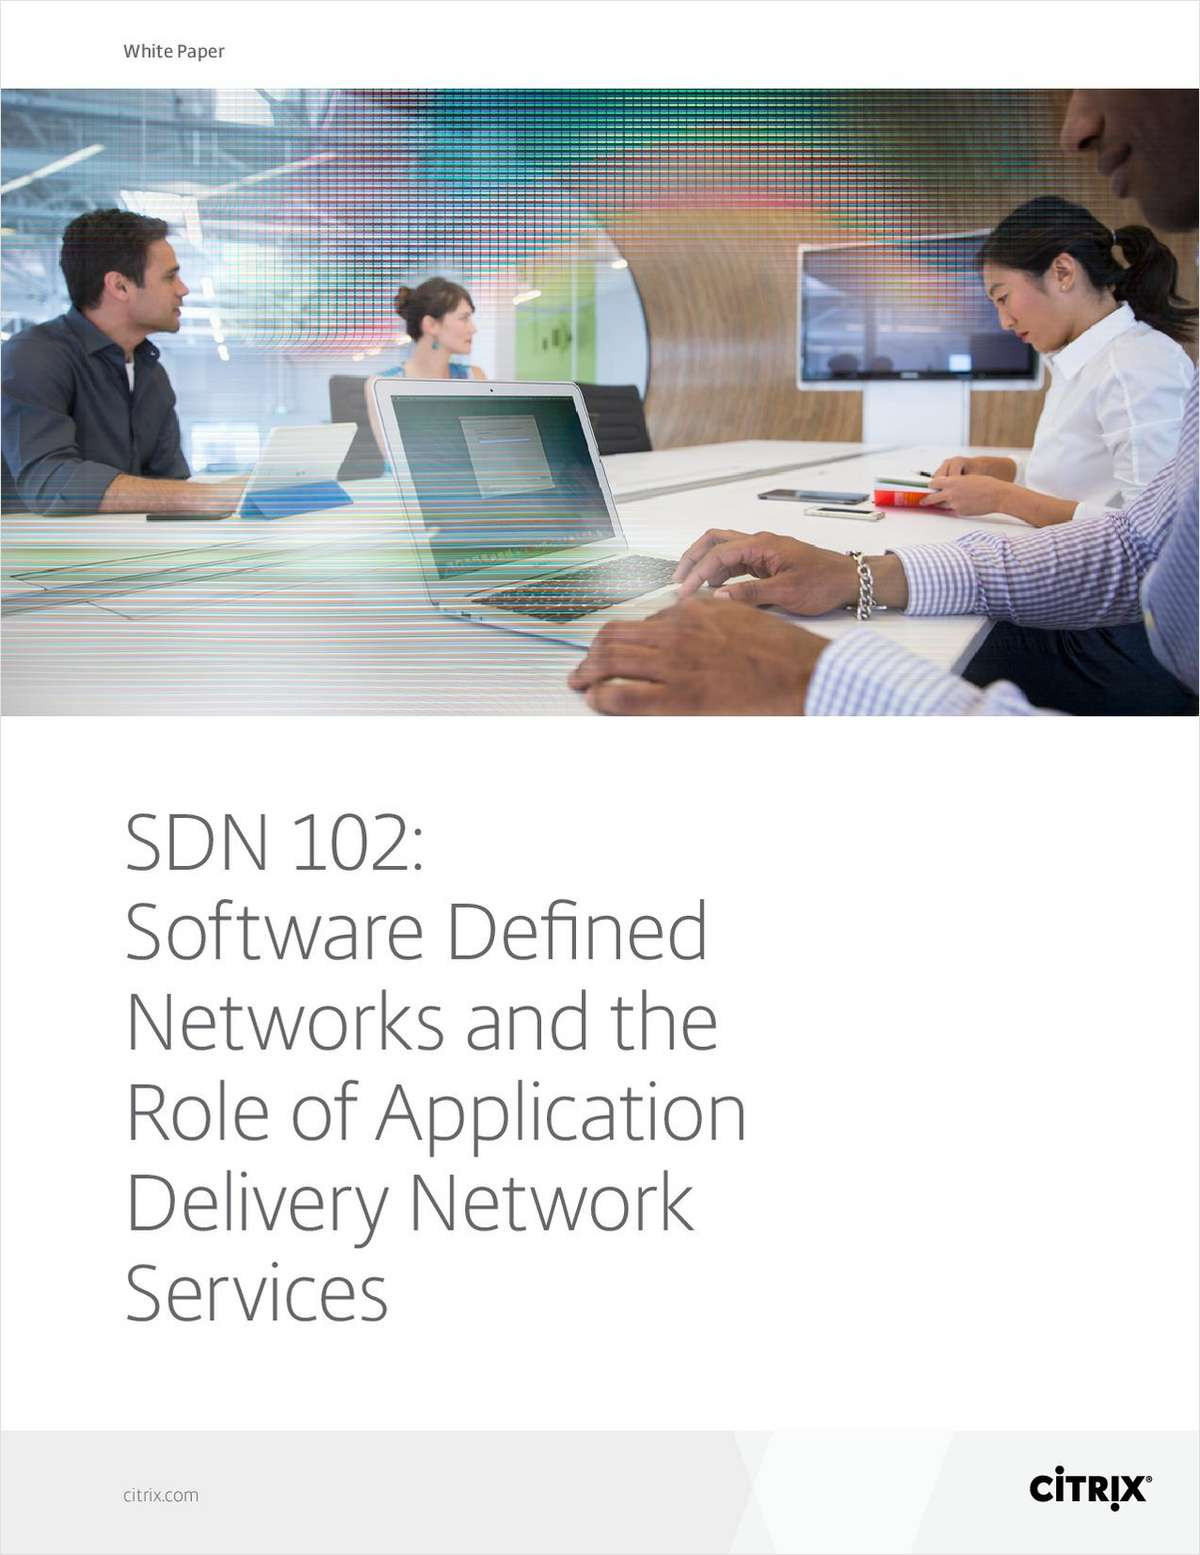 SDN 102: Software Defined Networks and the Role of Application Delivery Network Services